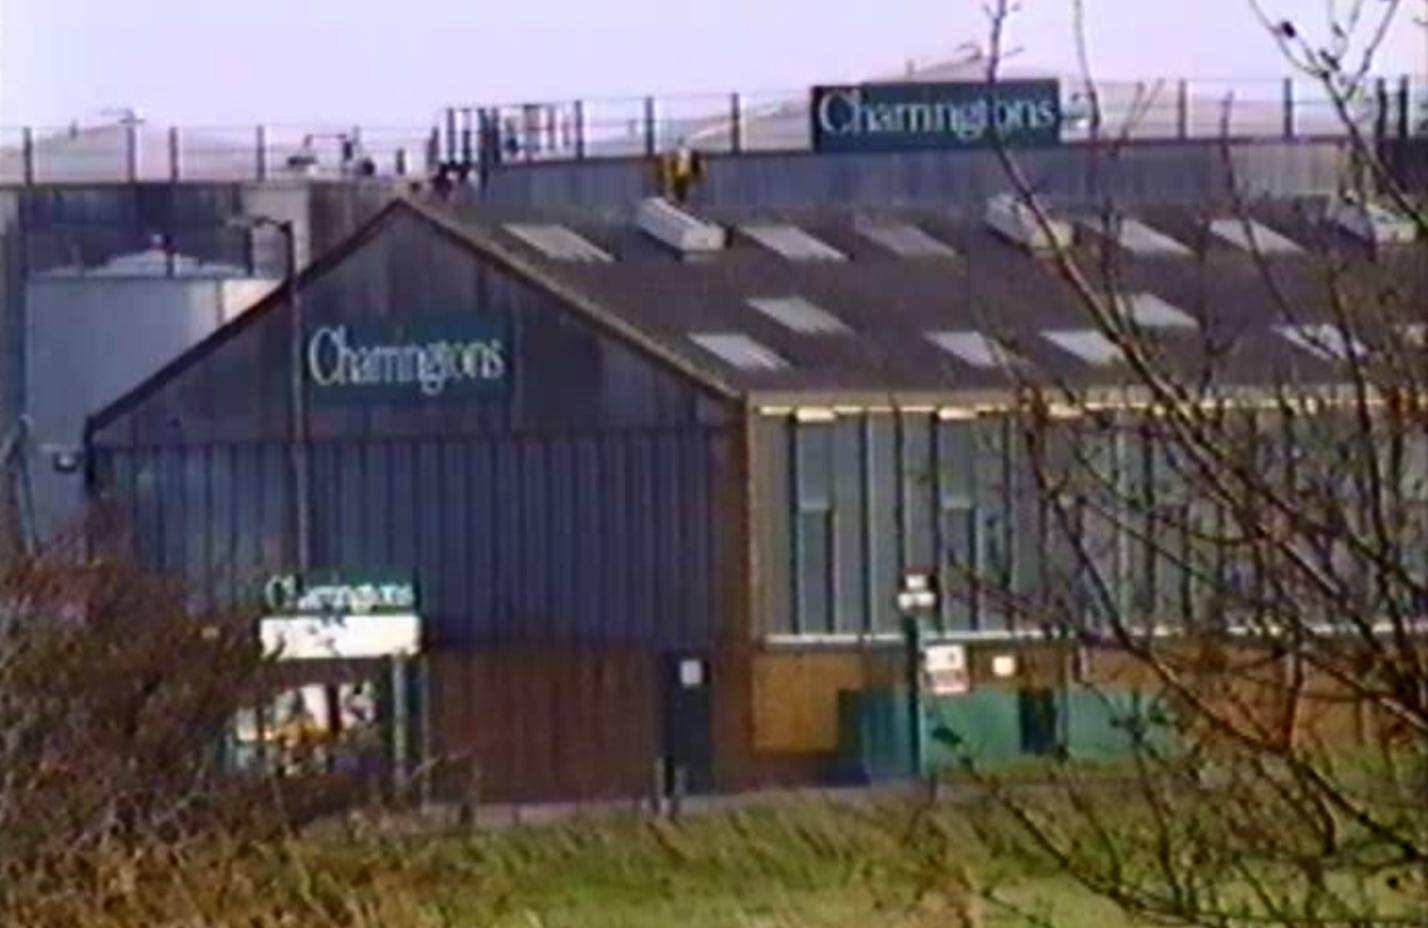 Charringtons, 1993